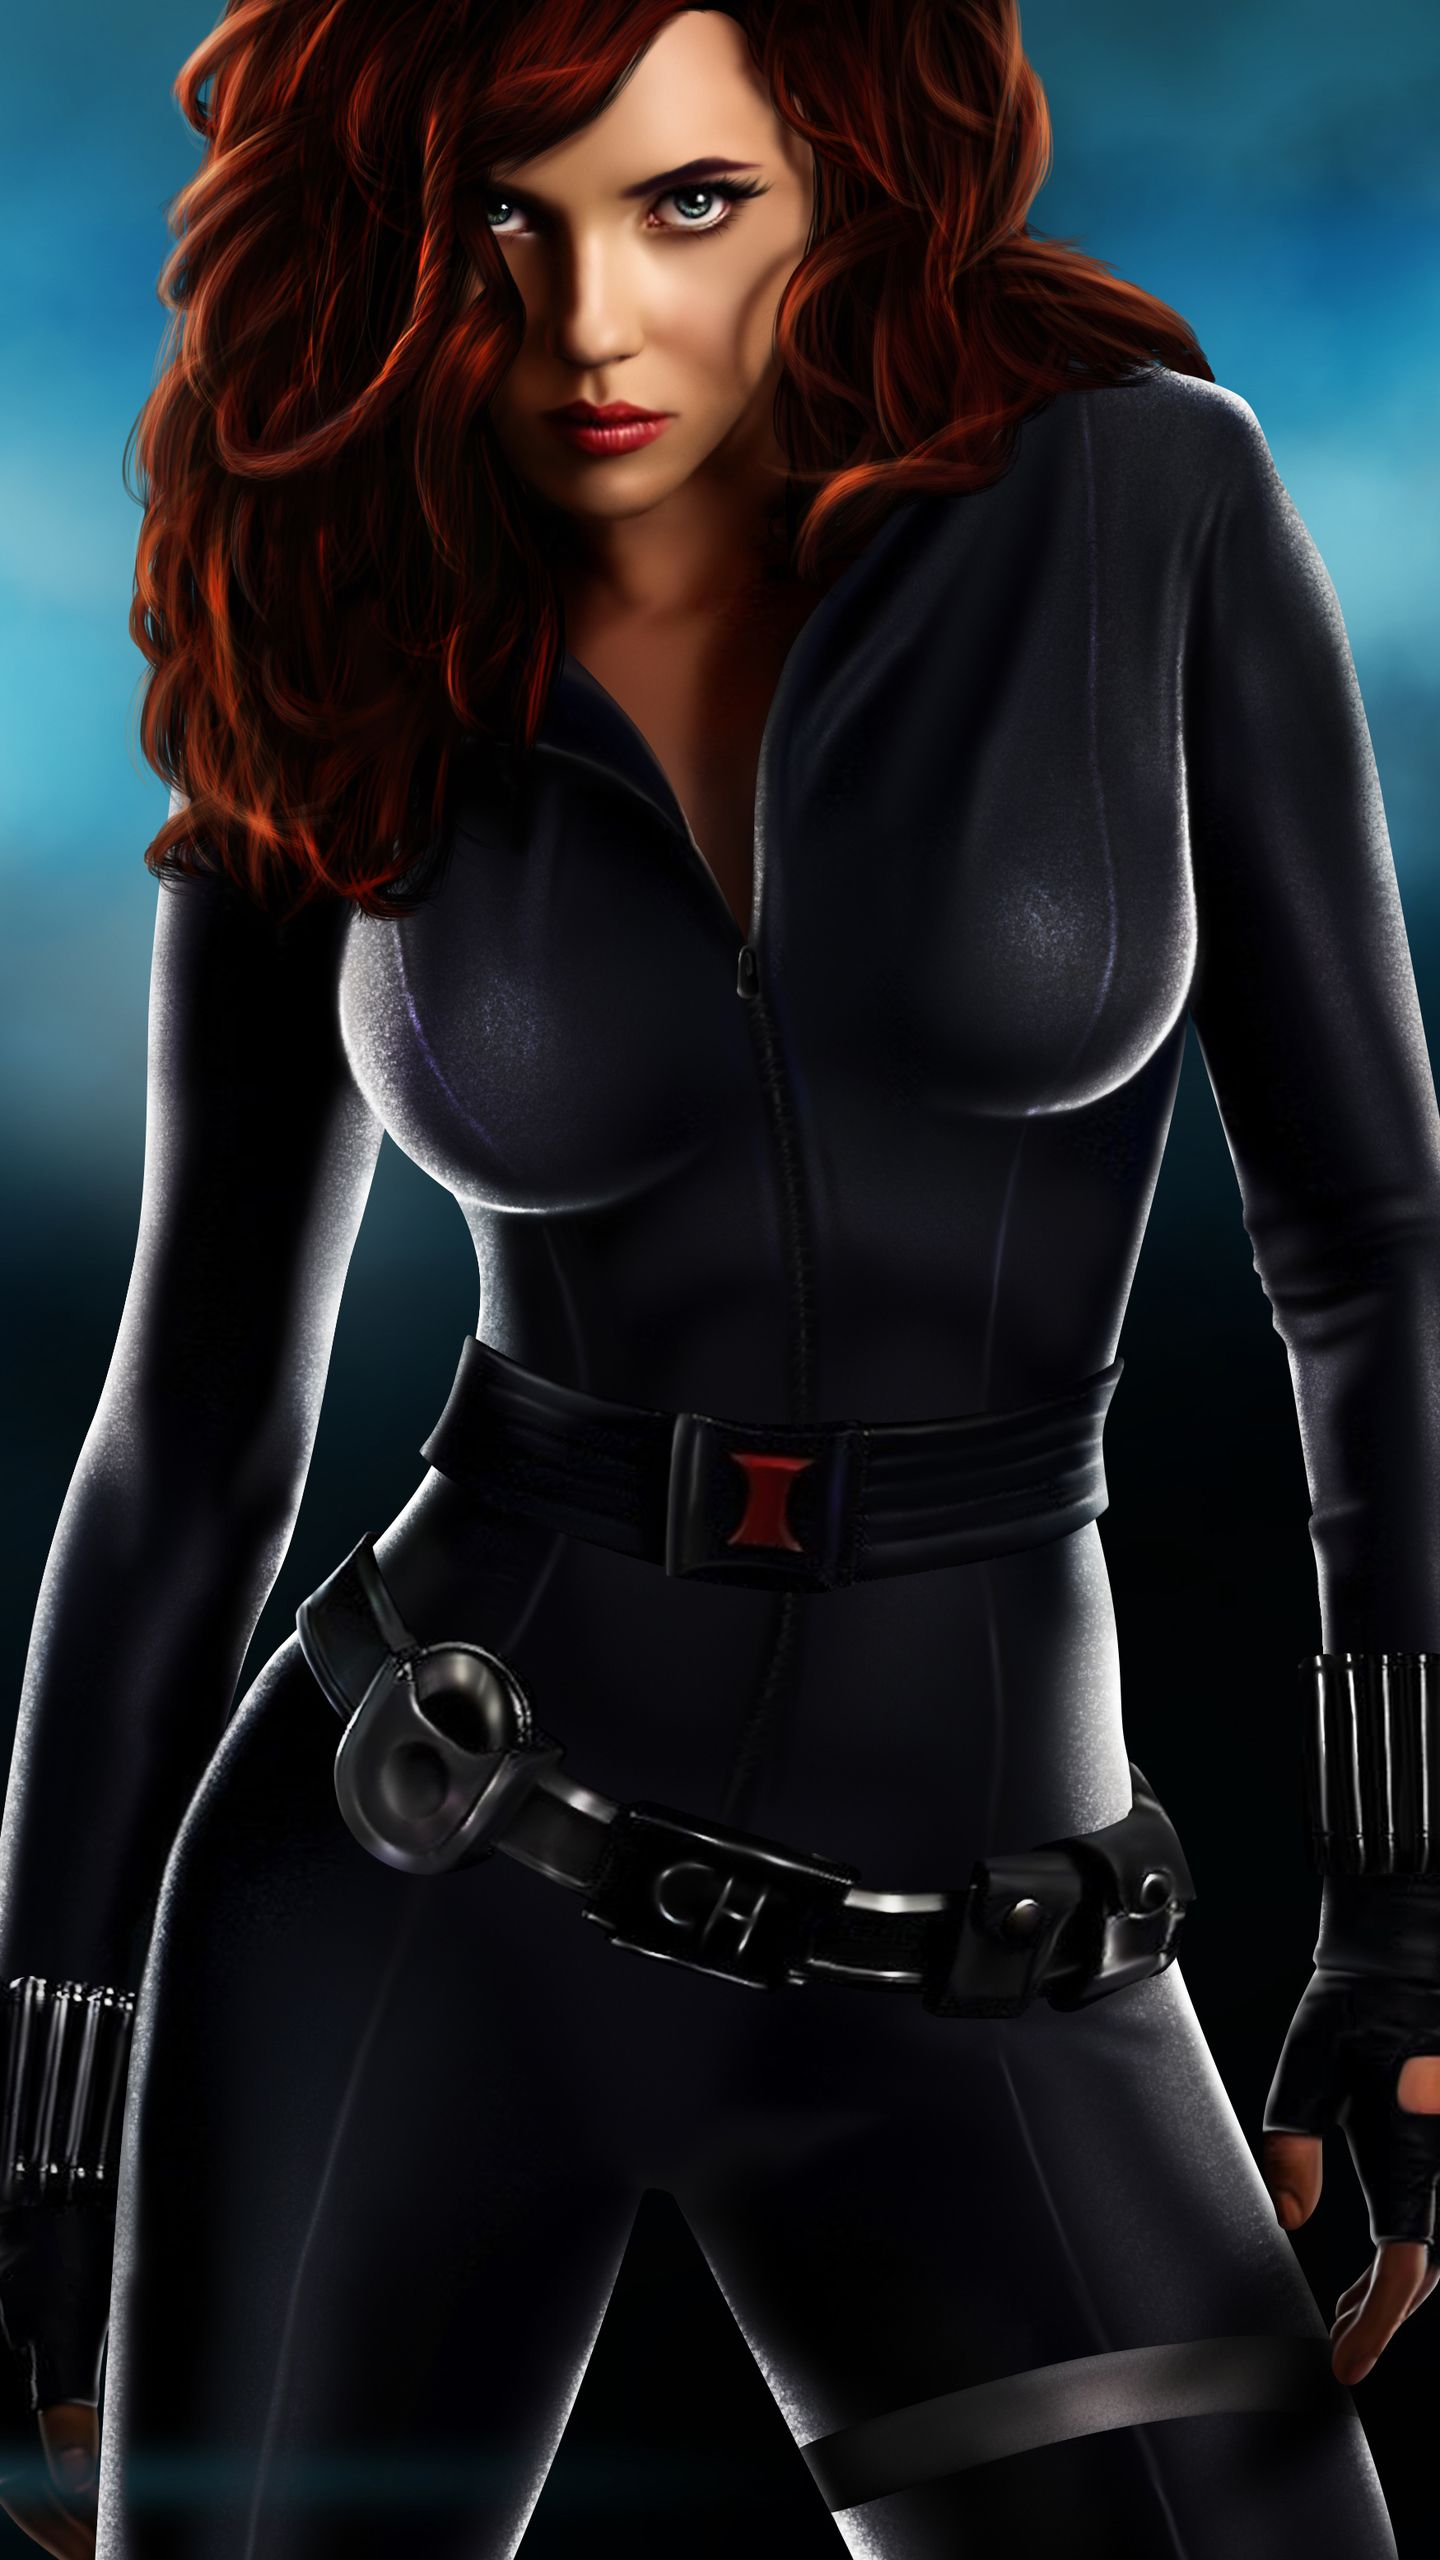 Marvel Confirms The Director Of Black Widow Starring